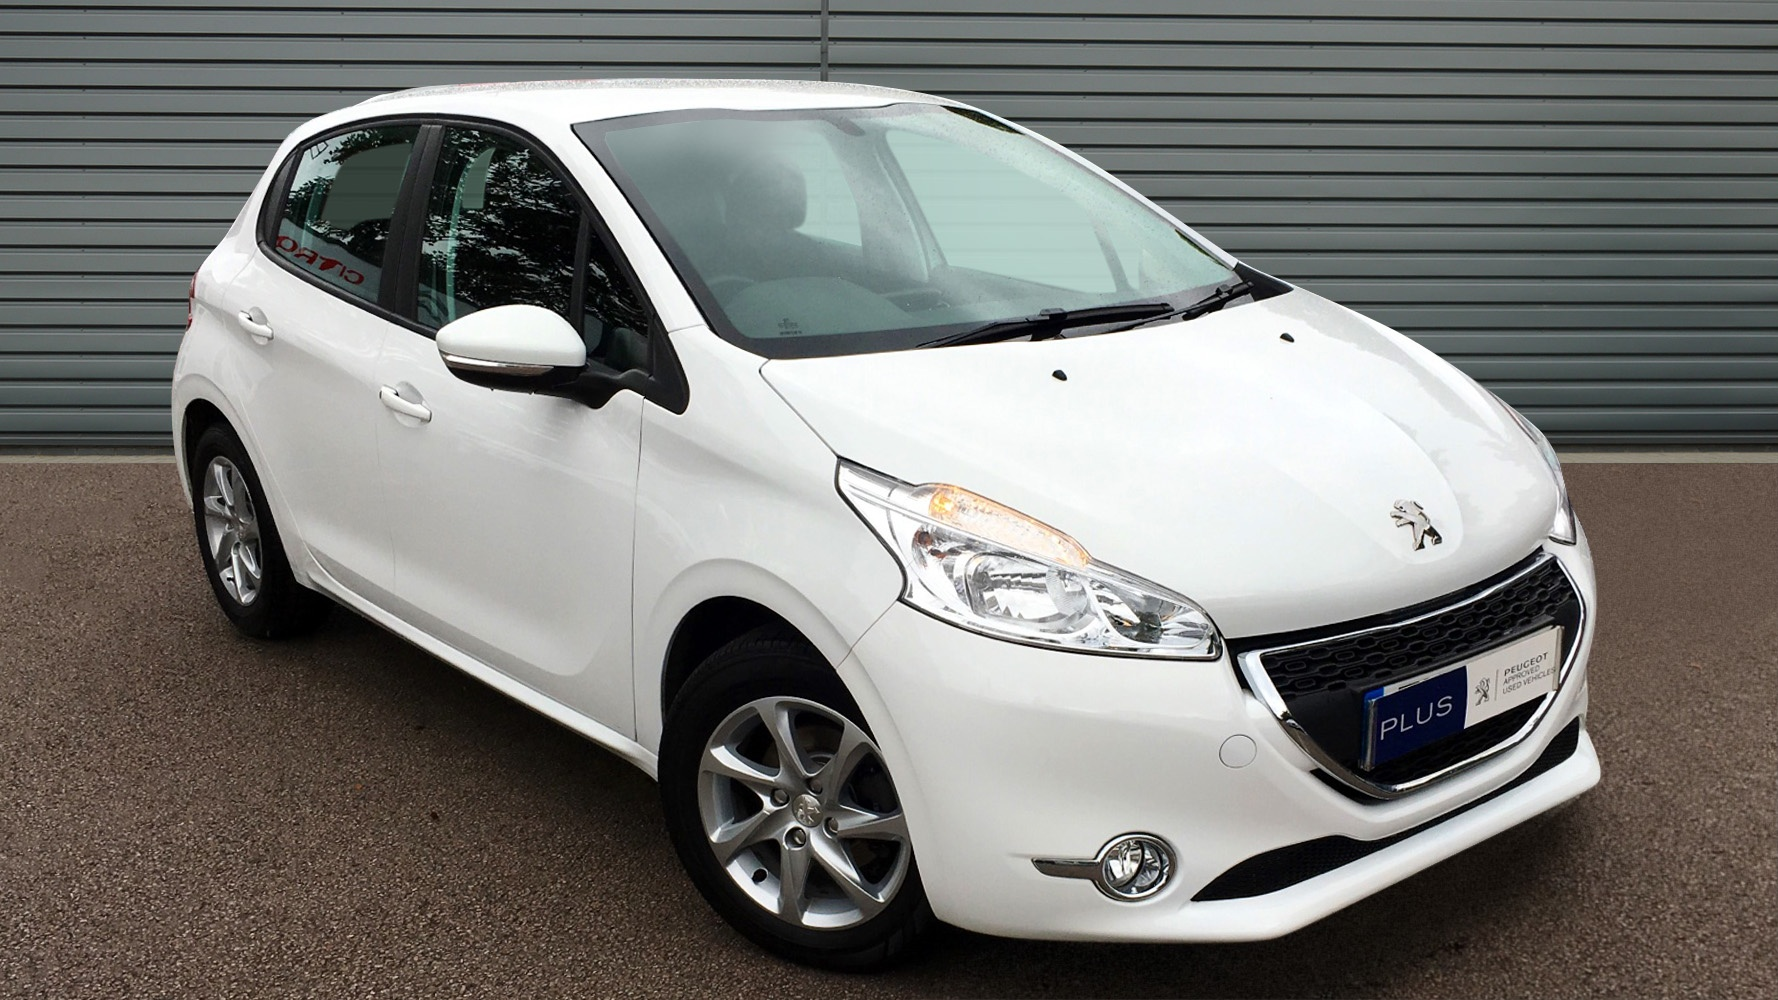 used peugeot 208 hatchback 1 0 vti active 5dr 2014 en14cbf. Black Bedroom Furniture Sets. Home Design Ideas